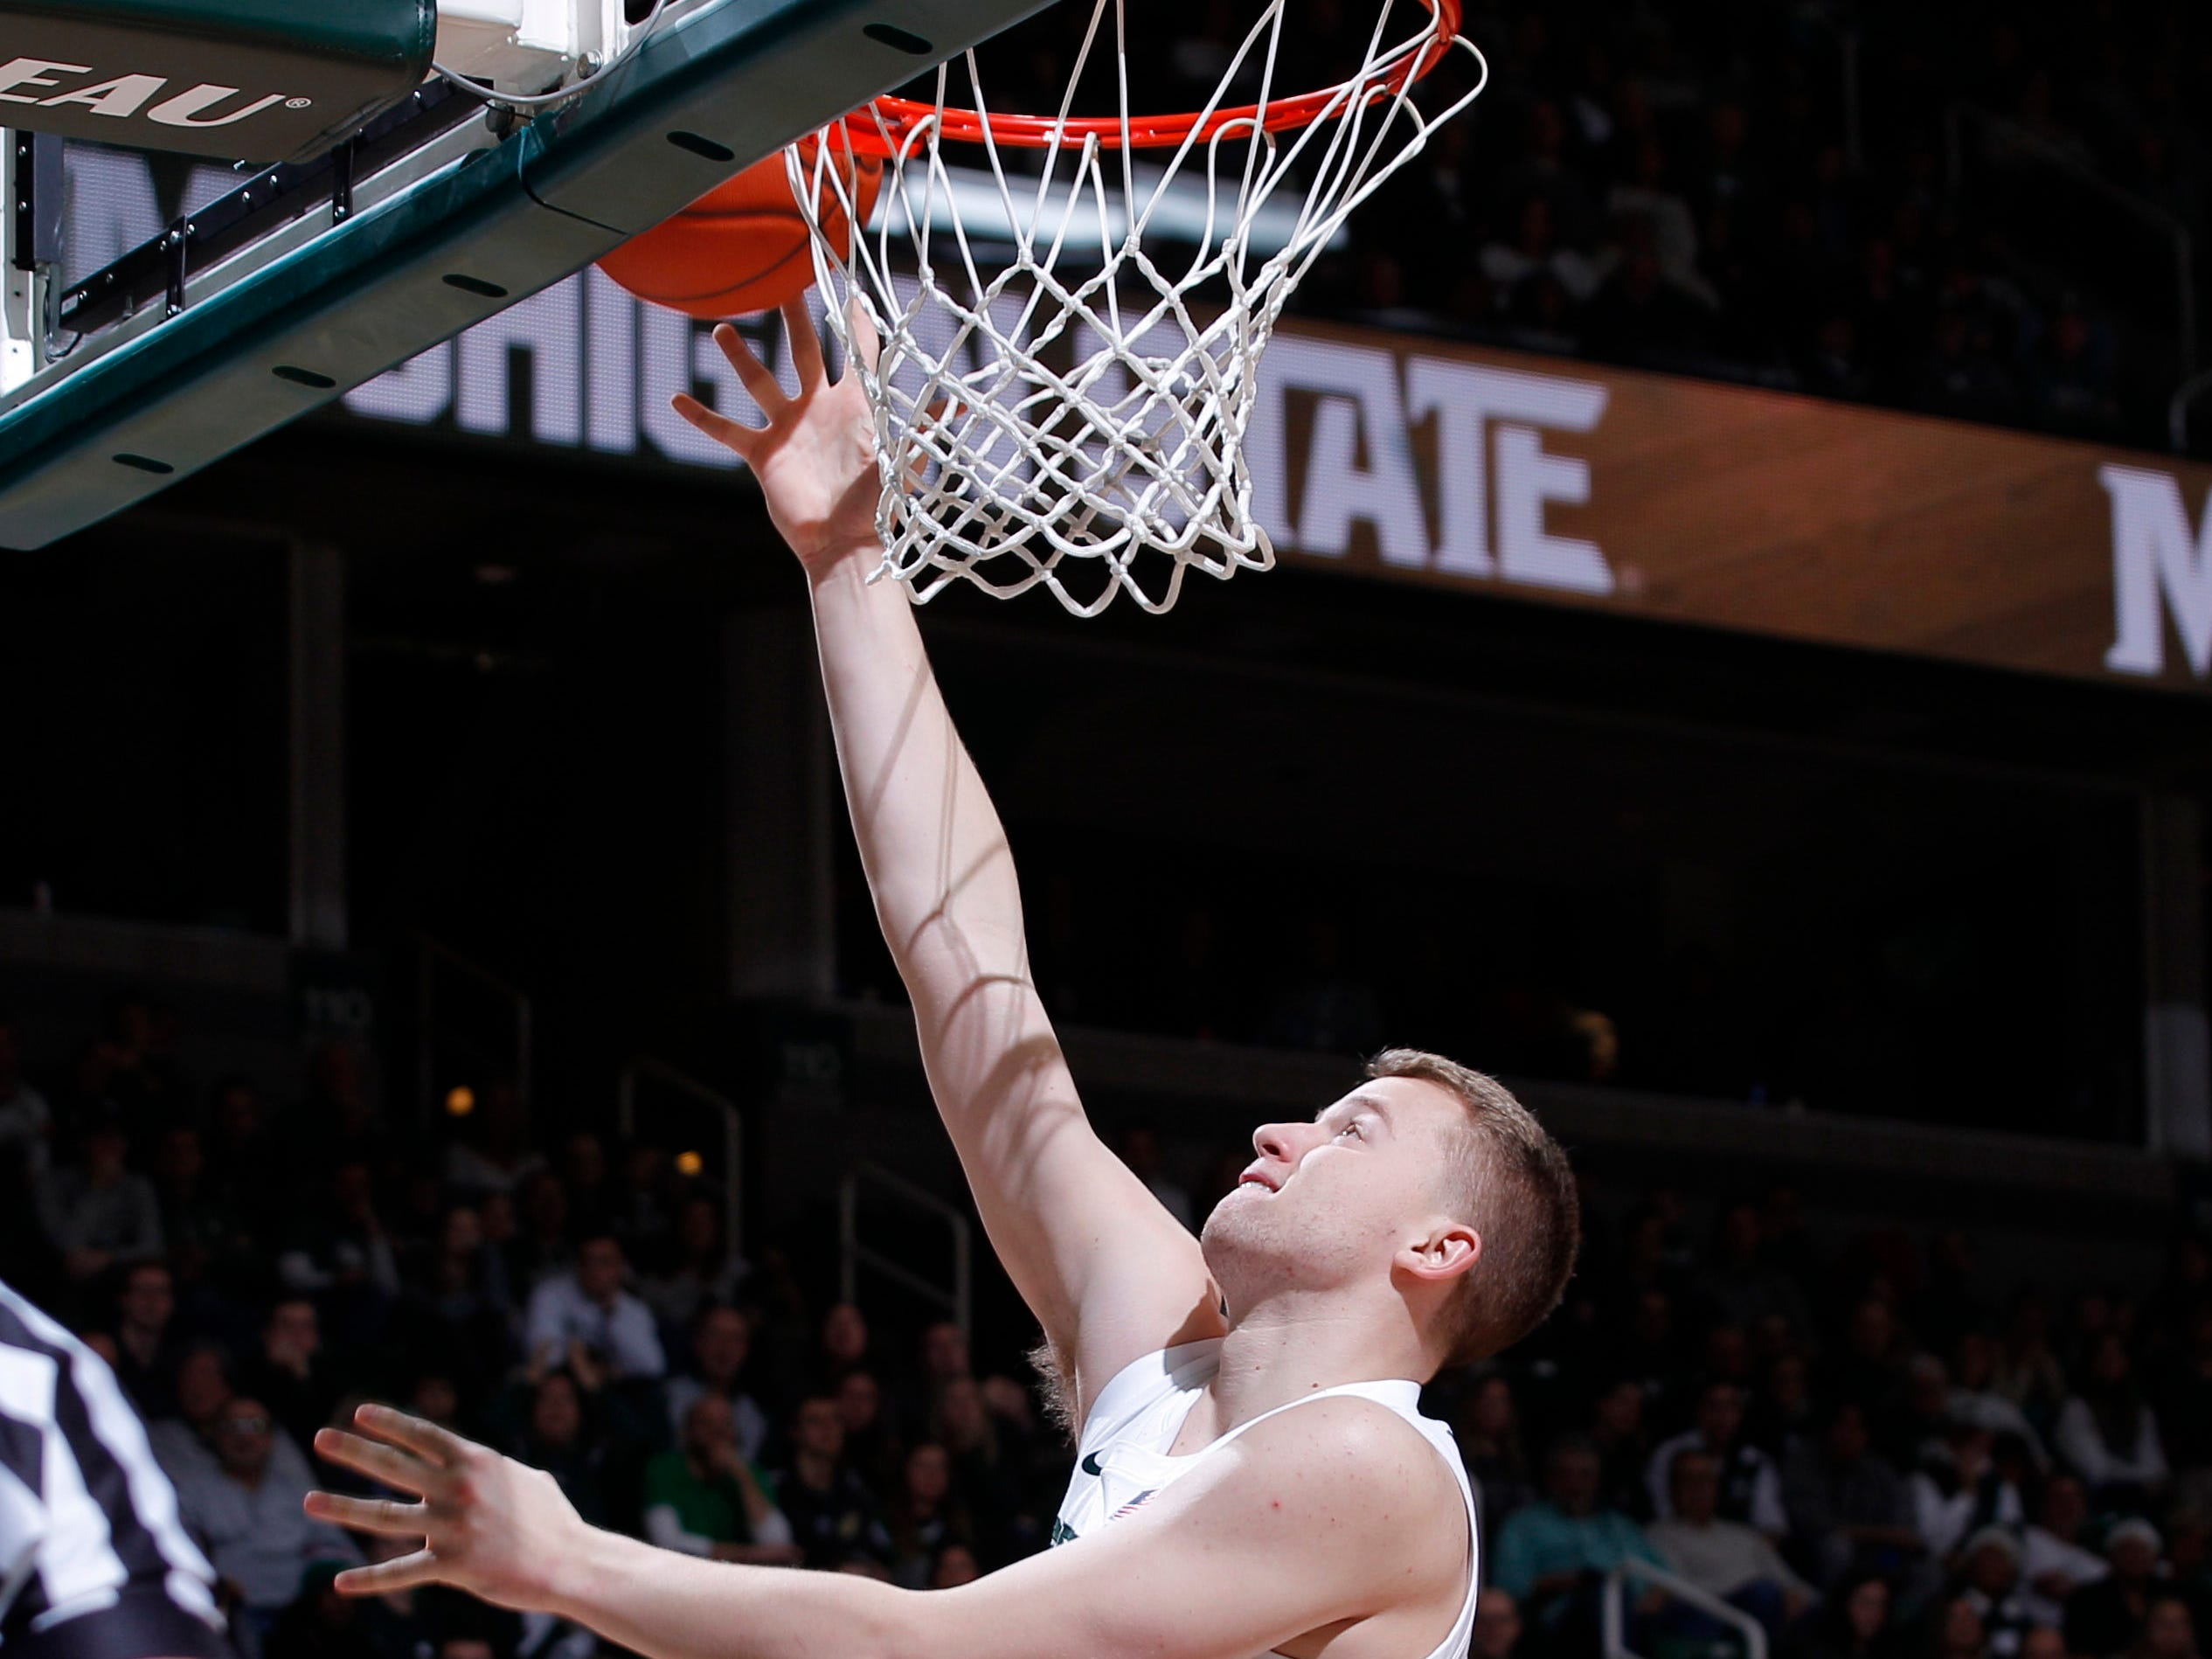 Michigan State's Thomas Kithier puts up a layup against Northern Illinois' Dante Thorpe, Saturday, Dec. 29, 2018, in East Lansing, Mich.